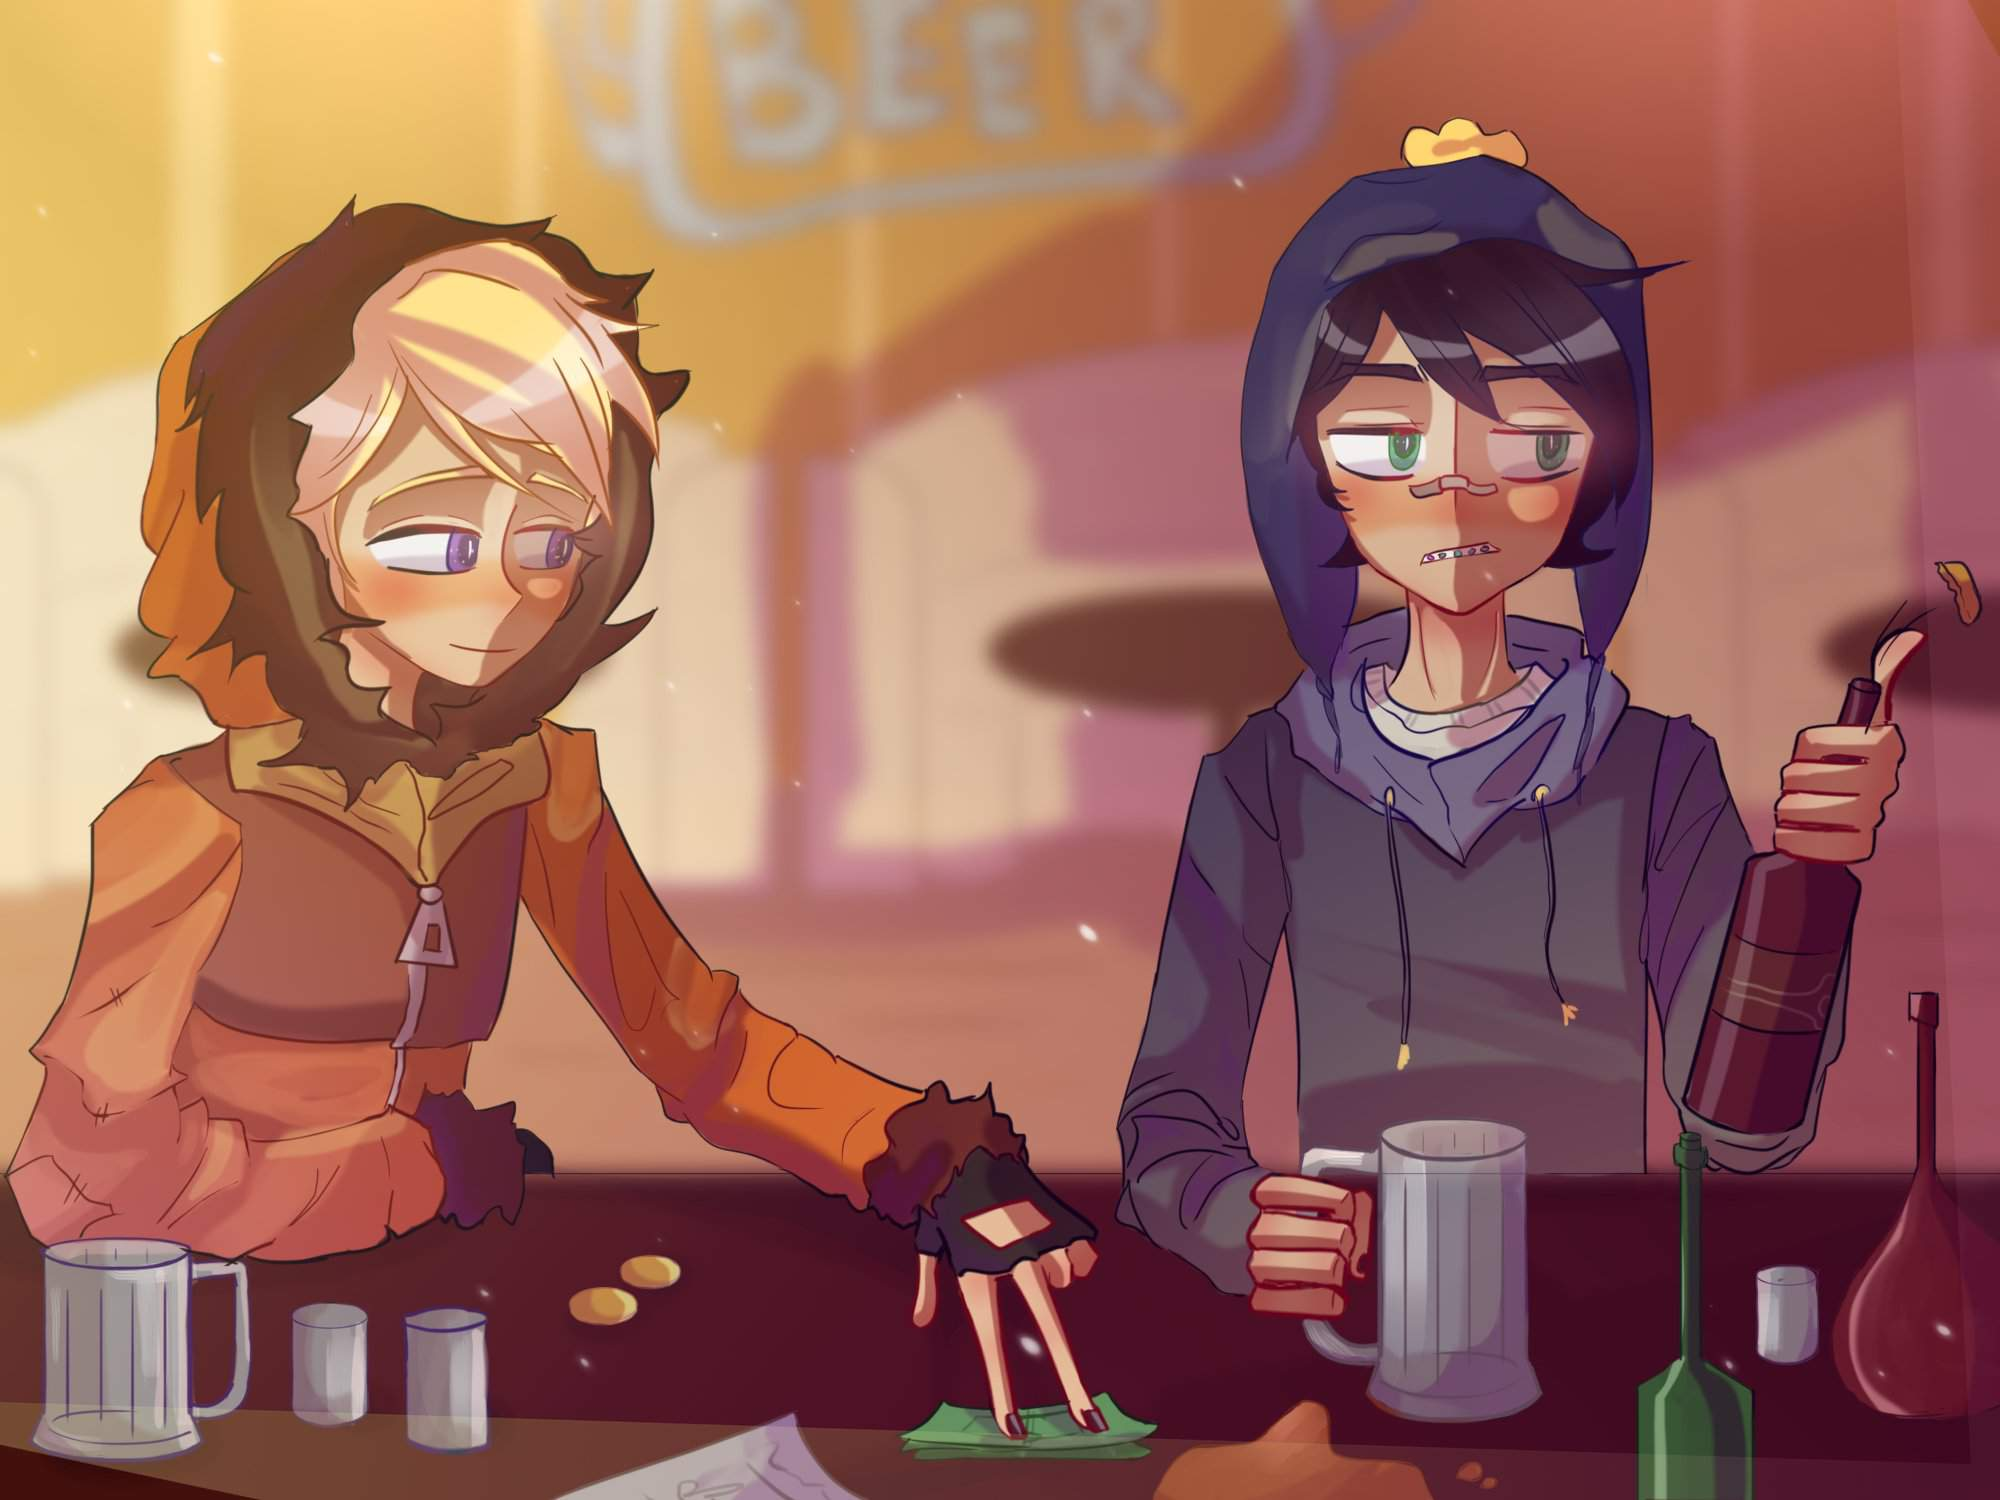 South Park Fan Art Crenny Week Day 1 Competition Competitive Craig X Kenny South Park Amino